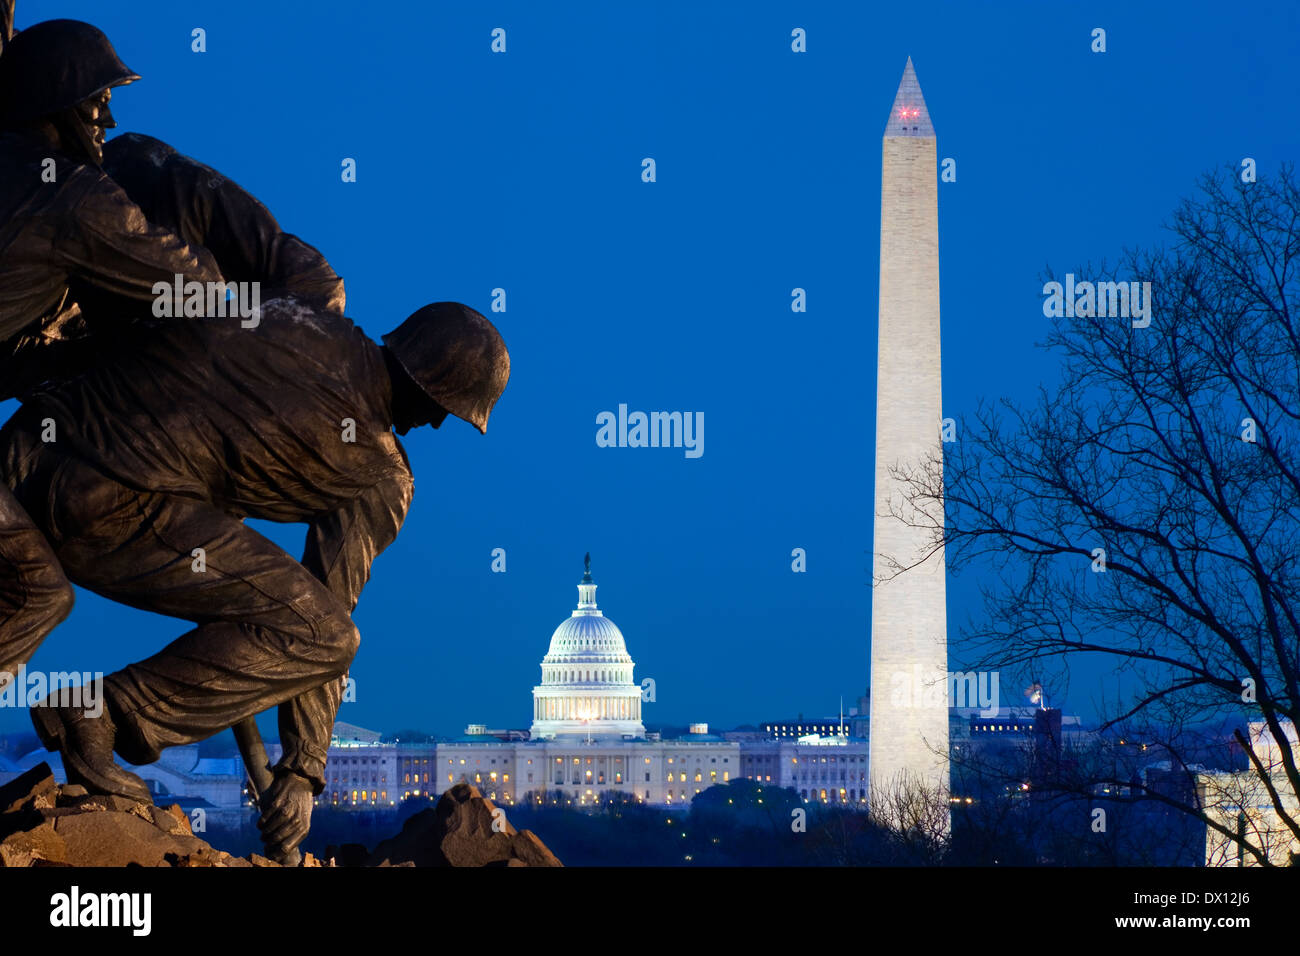 https://c7.alamy.com/comp/DX12J6/arlington-marine-corps-war-memorial-or-iwo-jima-flag-statue-dc-skyline-DX12J6.jpg